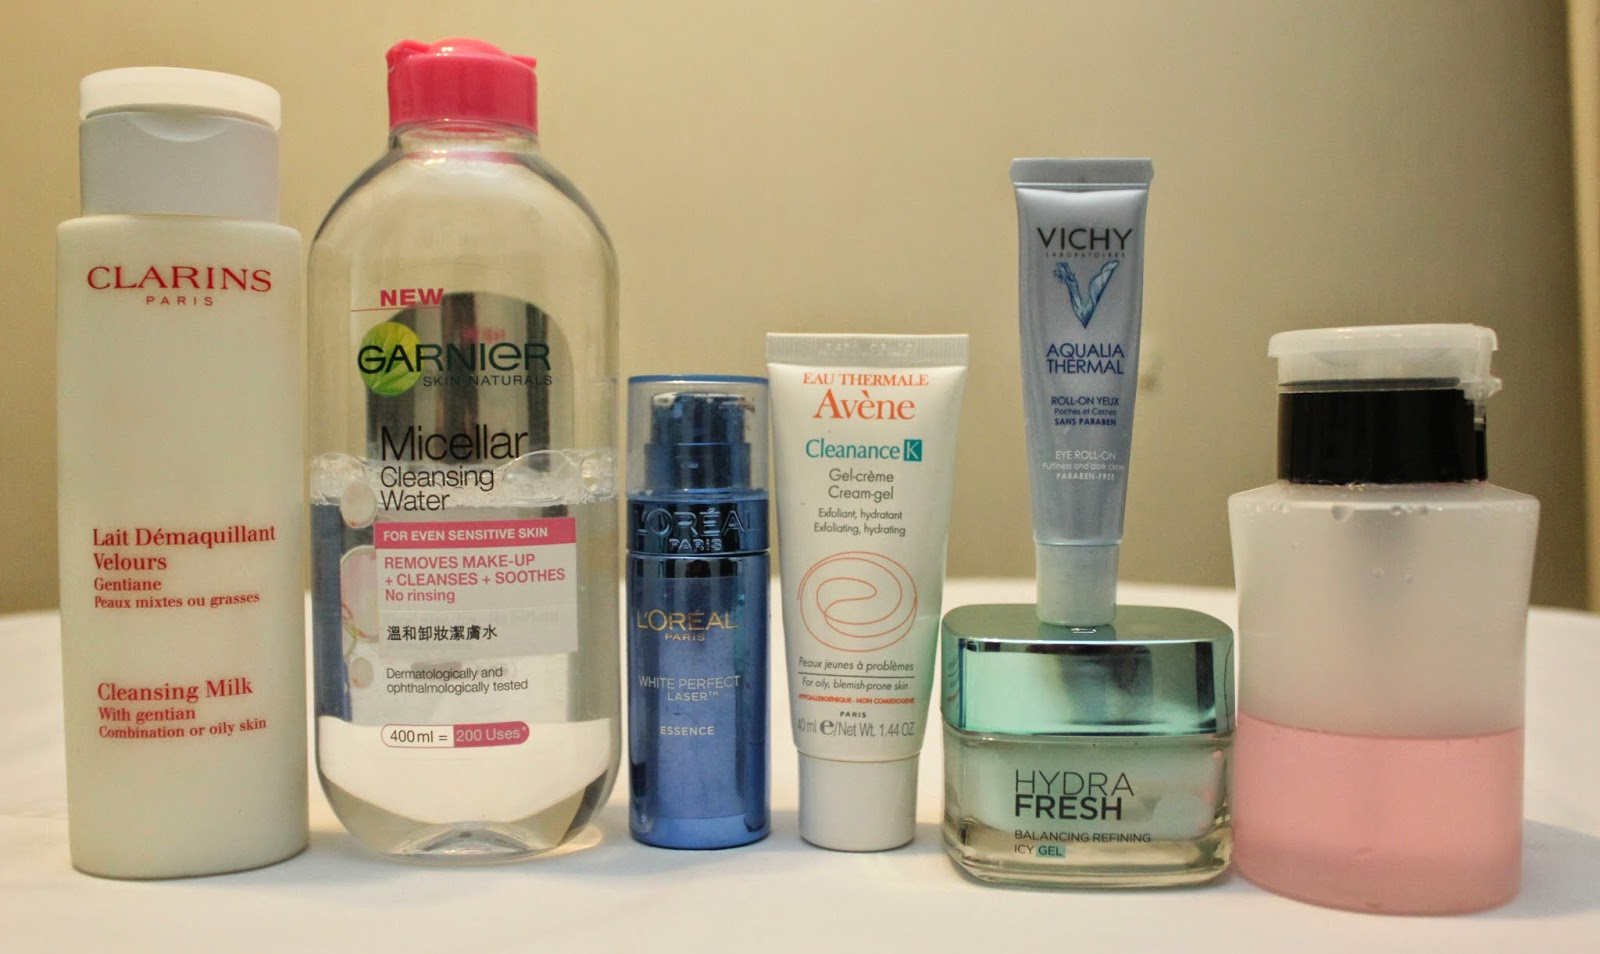 UPDATED MORNING SKINCARE ROUTINE